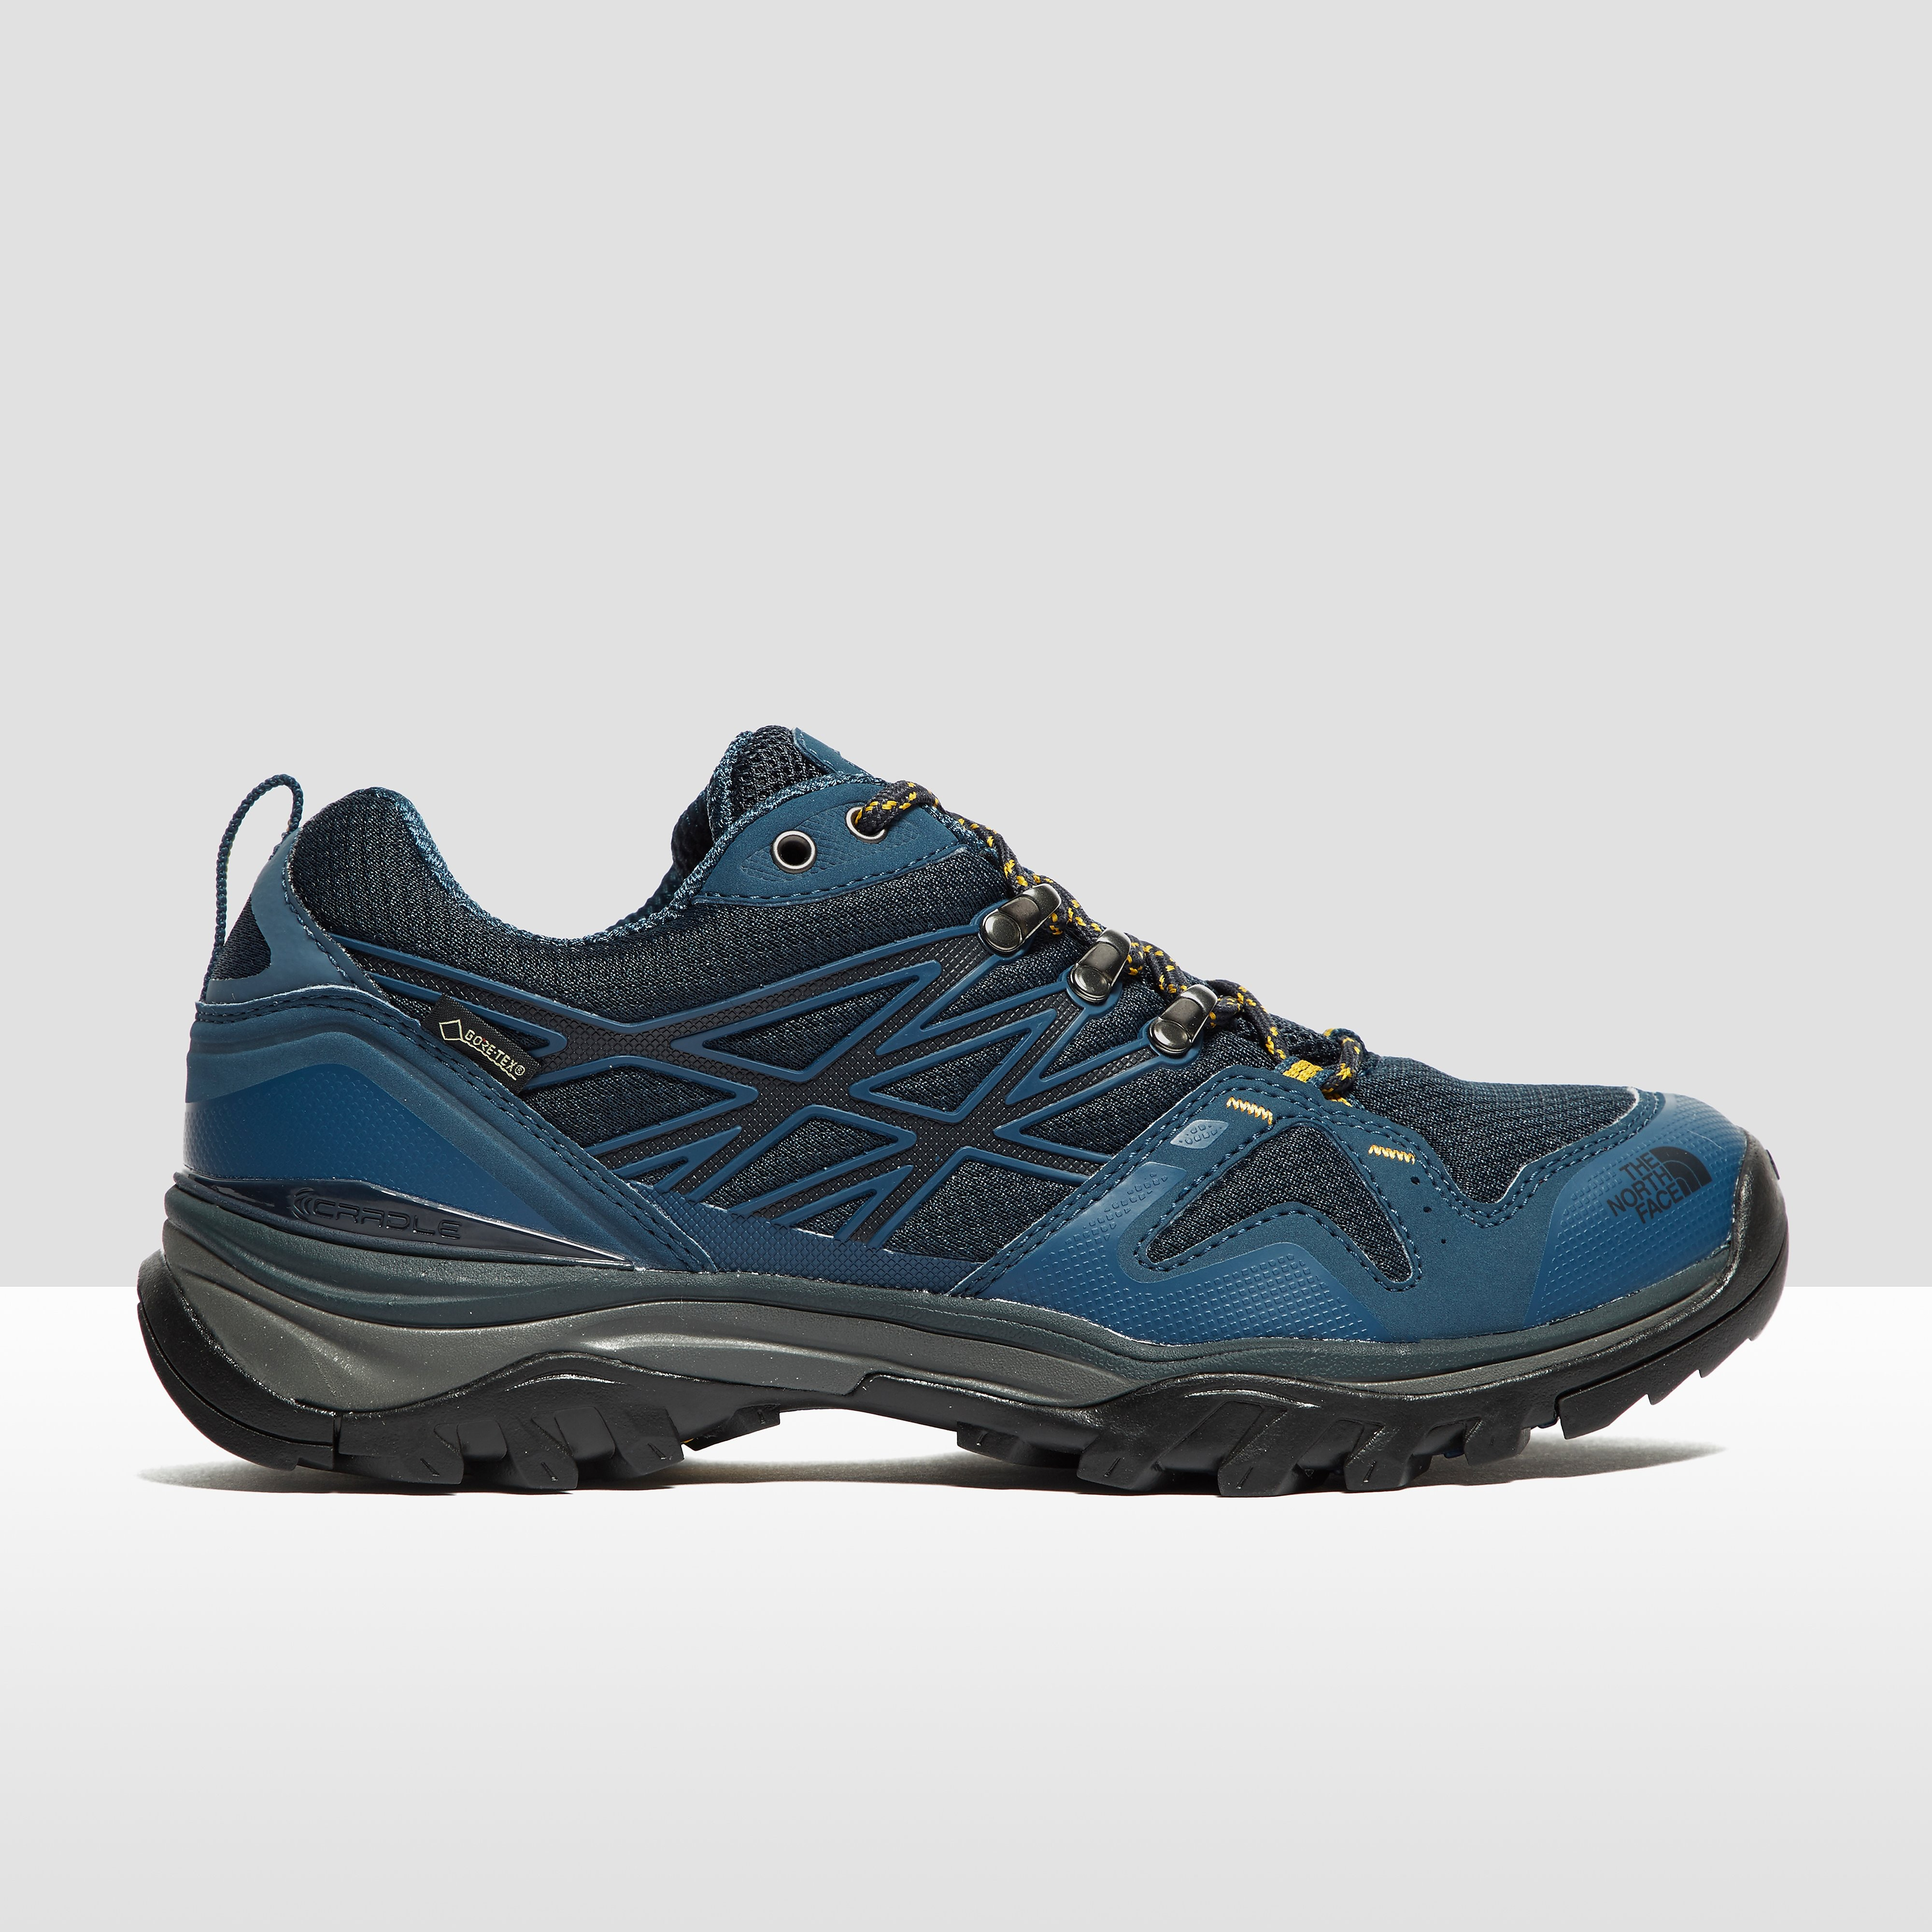 The North Face Hedgehog Fastpack Gore-TEX Men's Walking Shoes